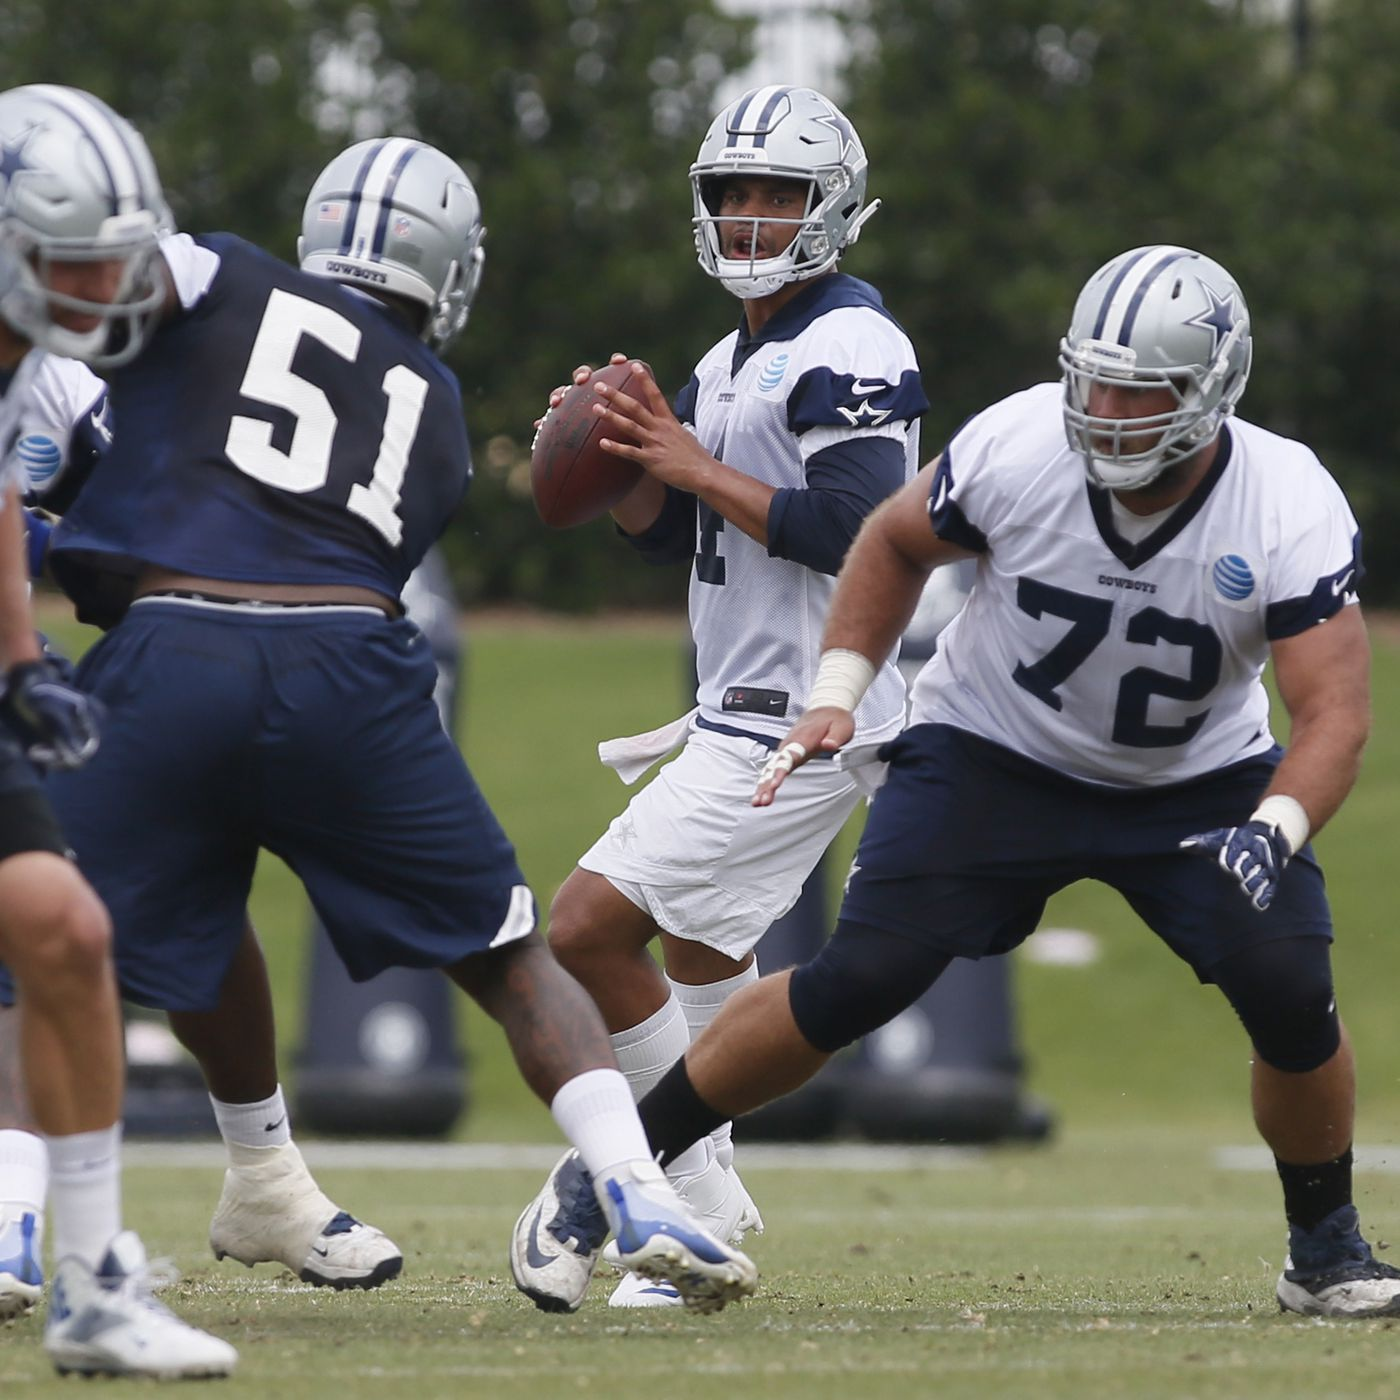 a0dd67eb370 Giants 2018 opponents: Are the Dallas Cowboys a playoff team? - Big ...